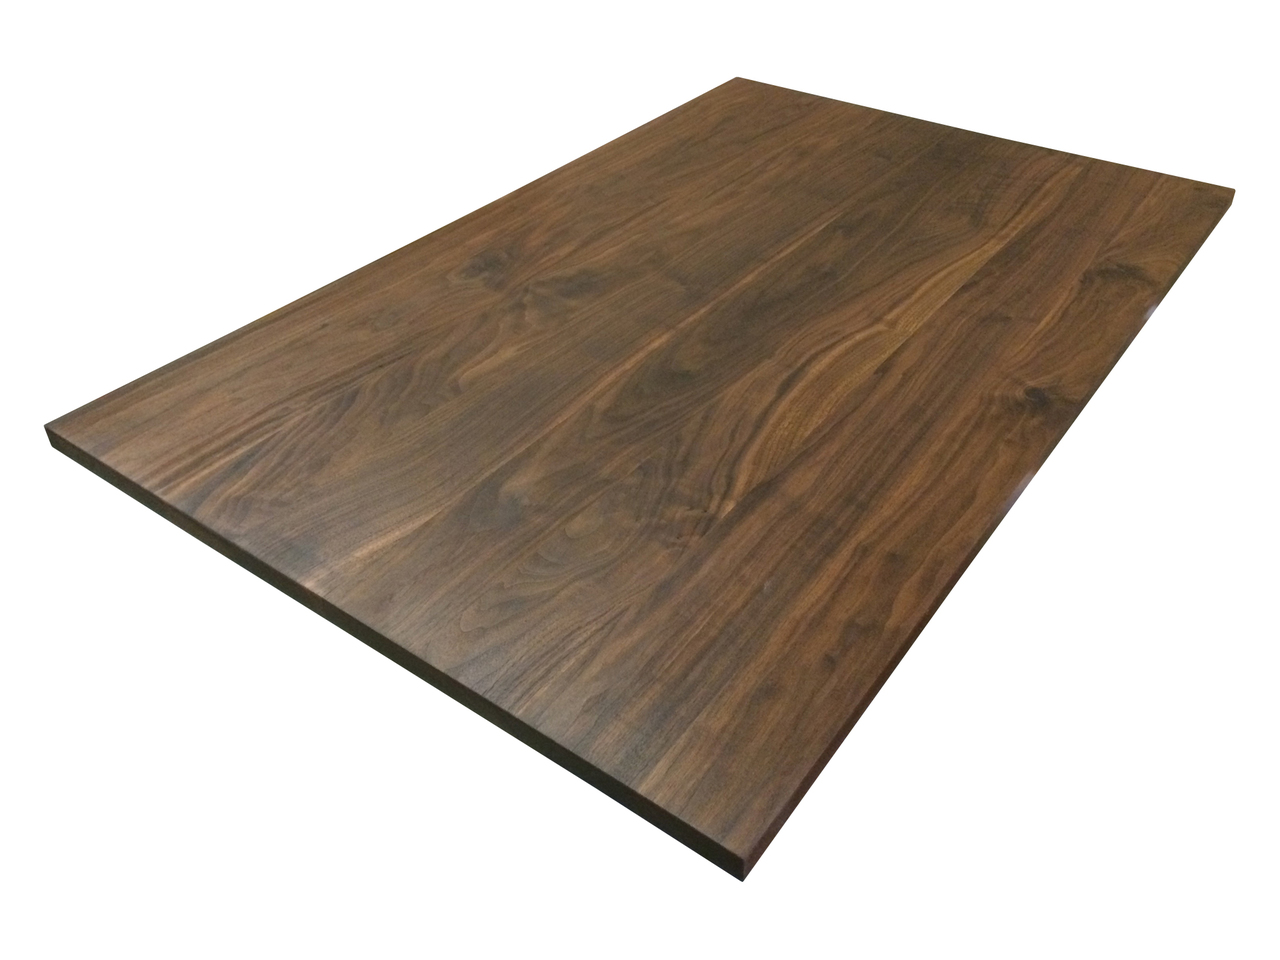 Armani Fine Woodworking Walnut Tabletop